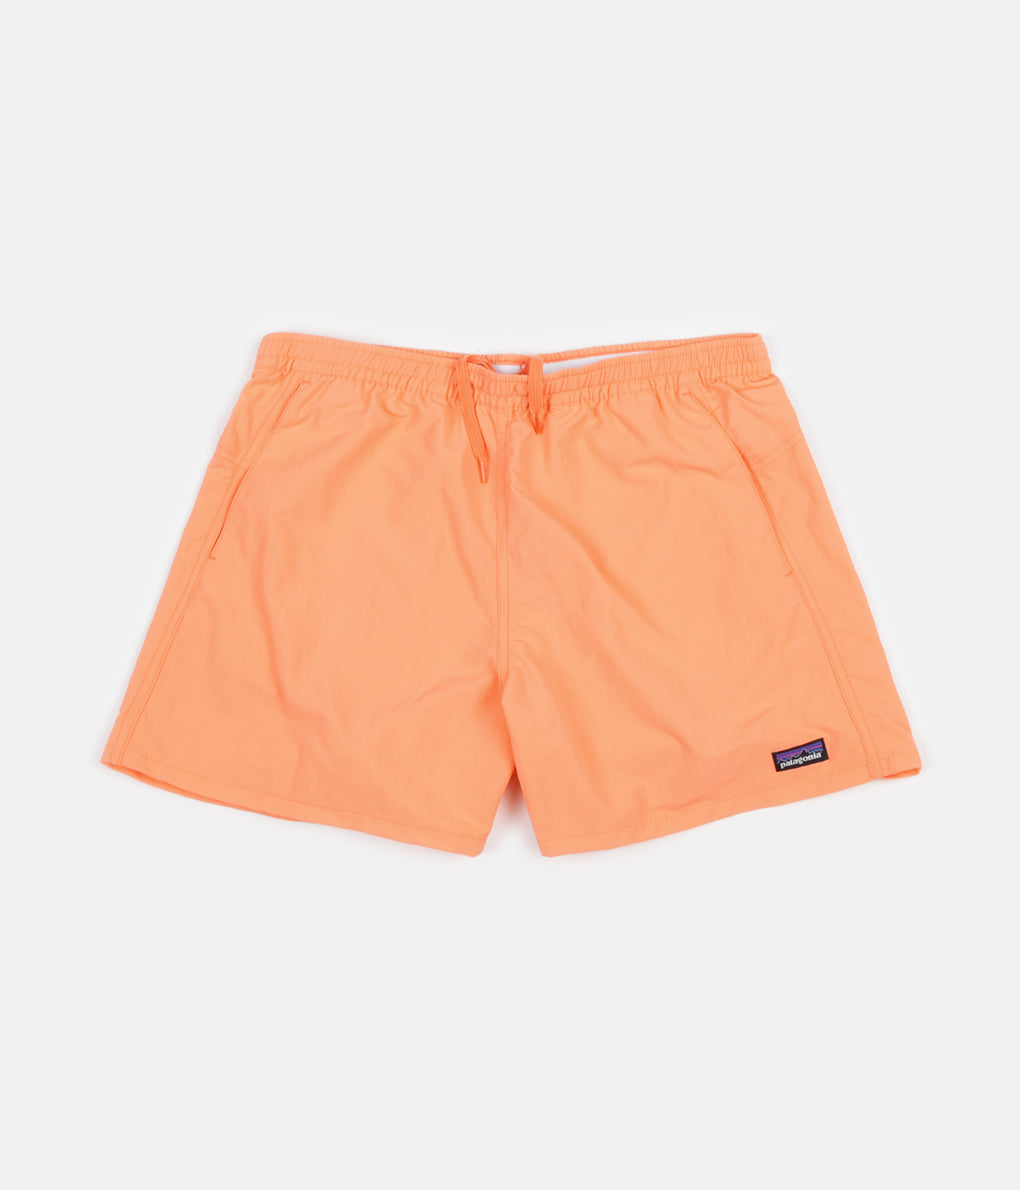 Patagonia Womens Baggies Shorts - Peach Sherbet